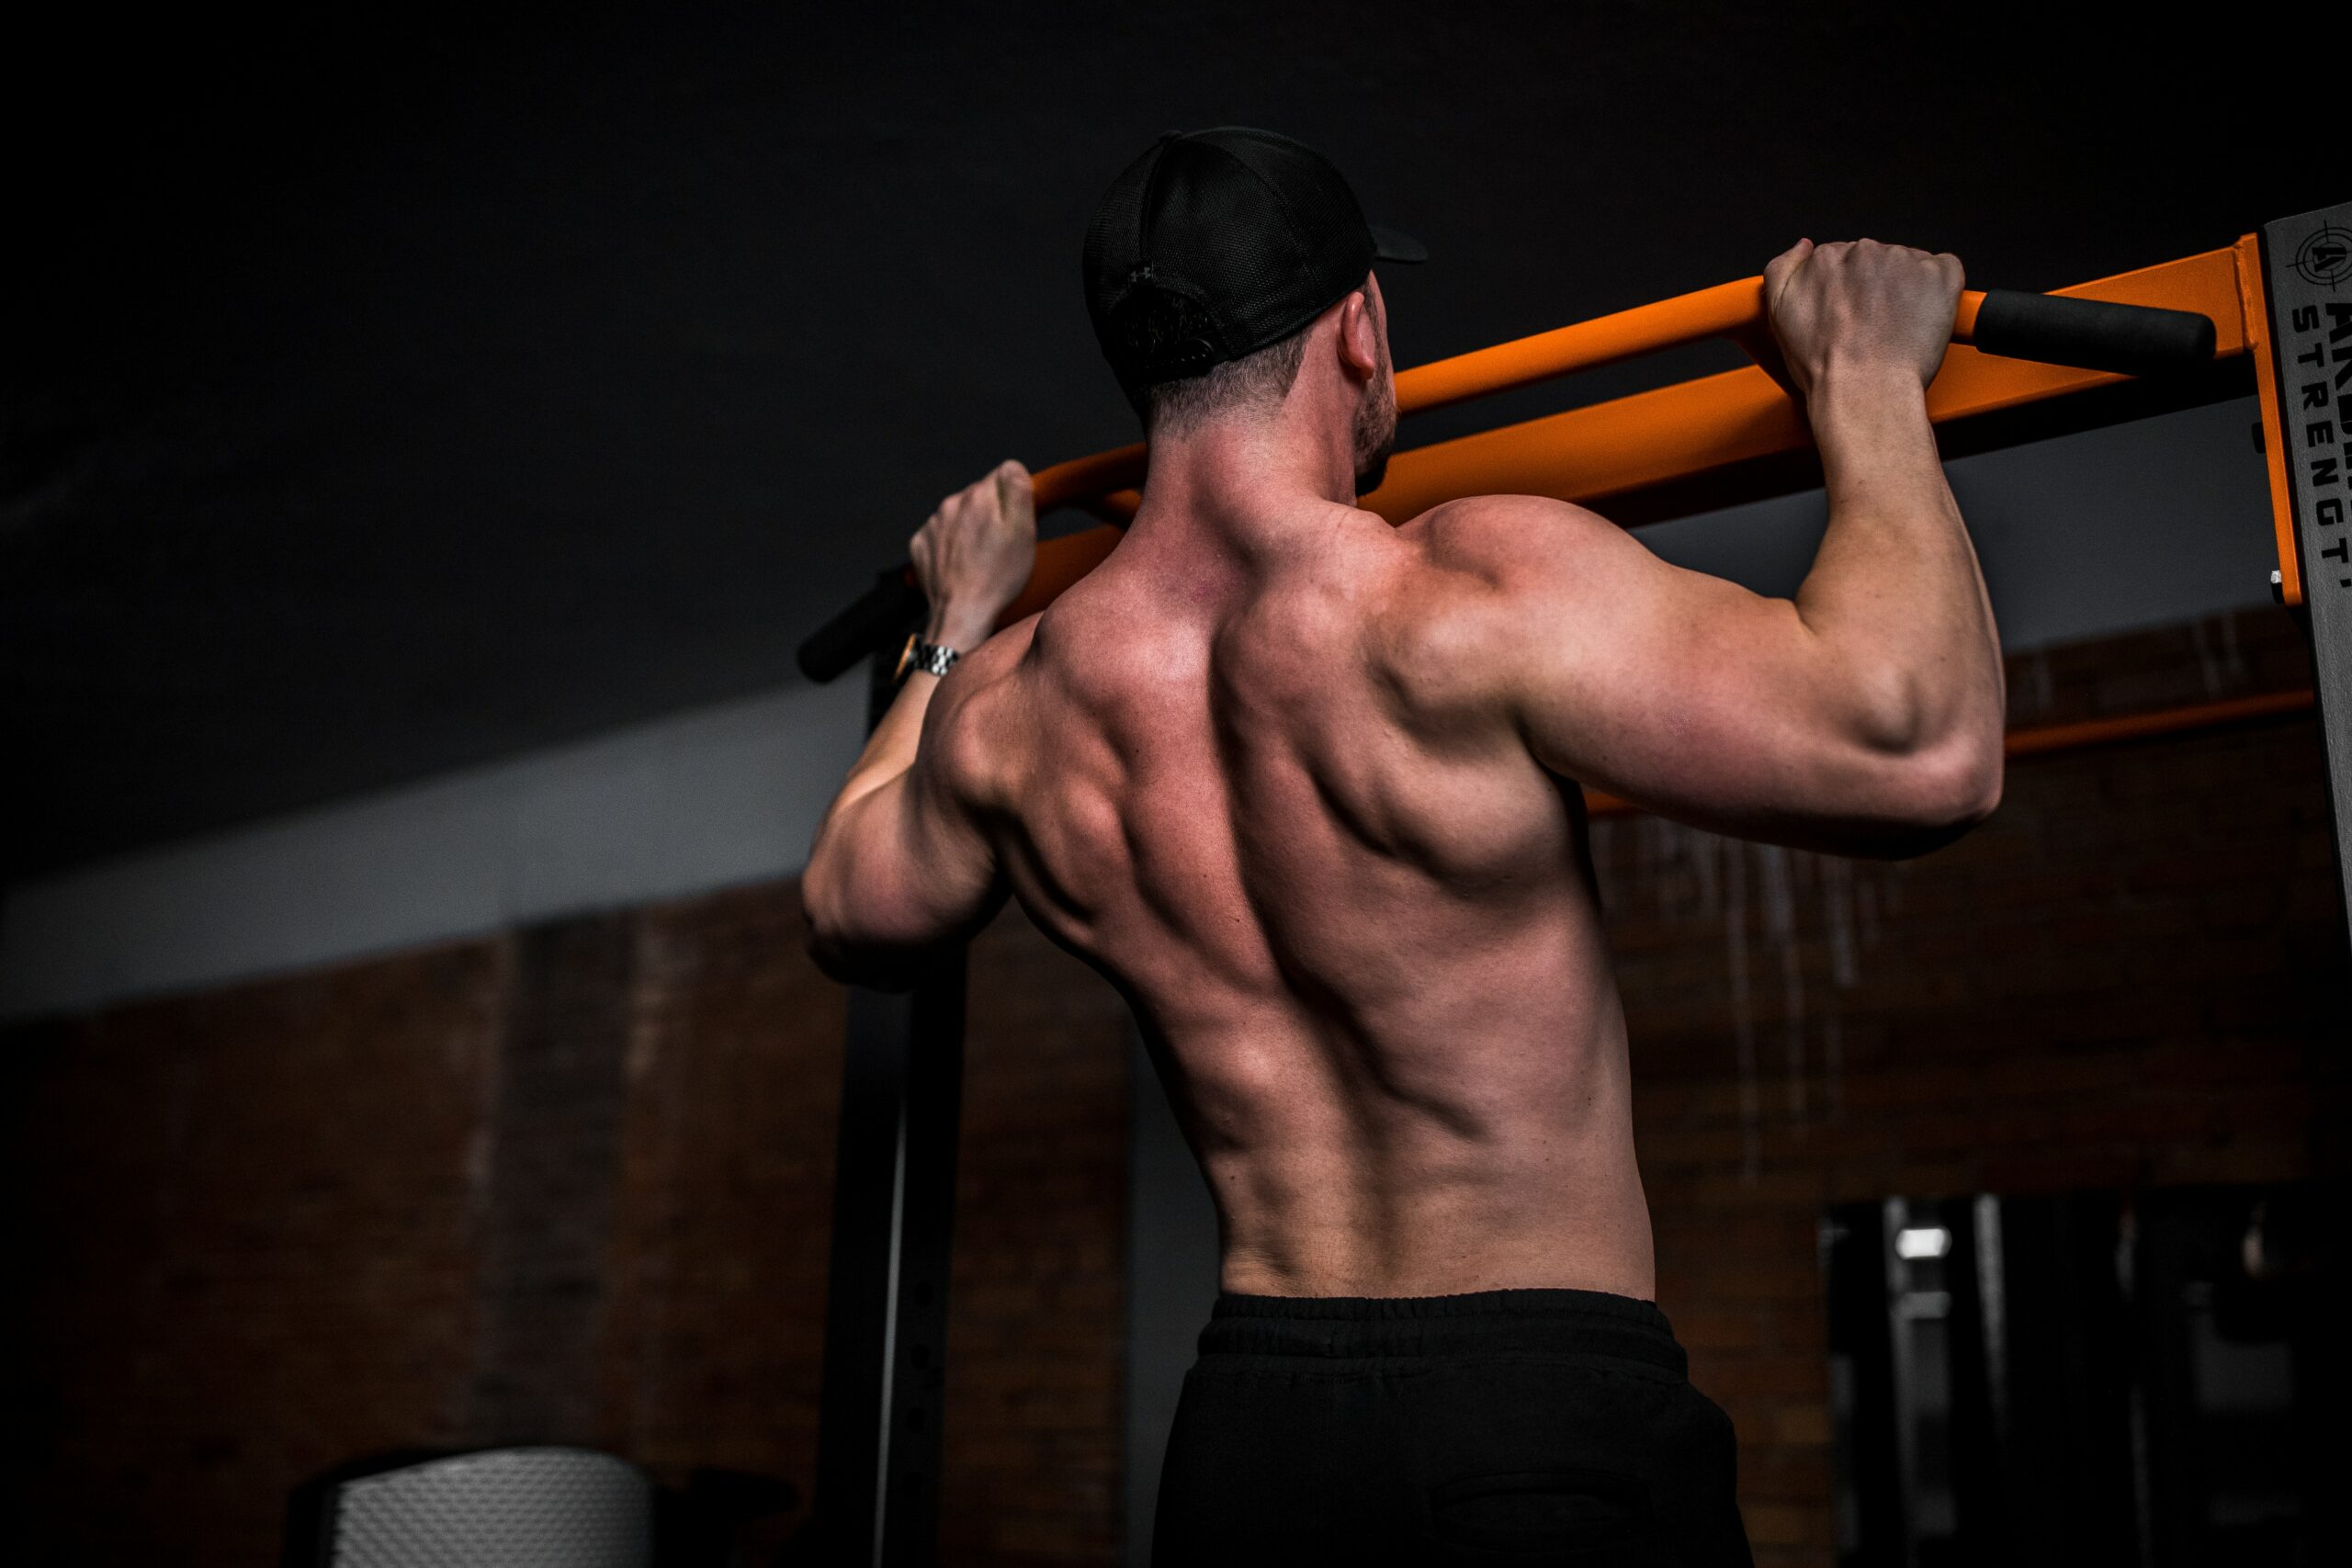 man in steroids for sale in pull up bar